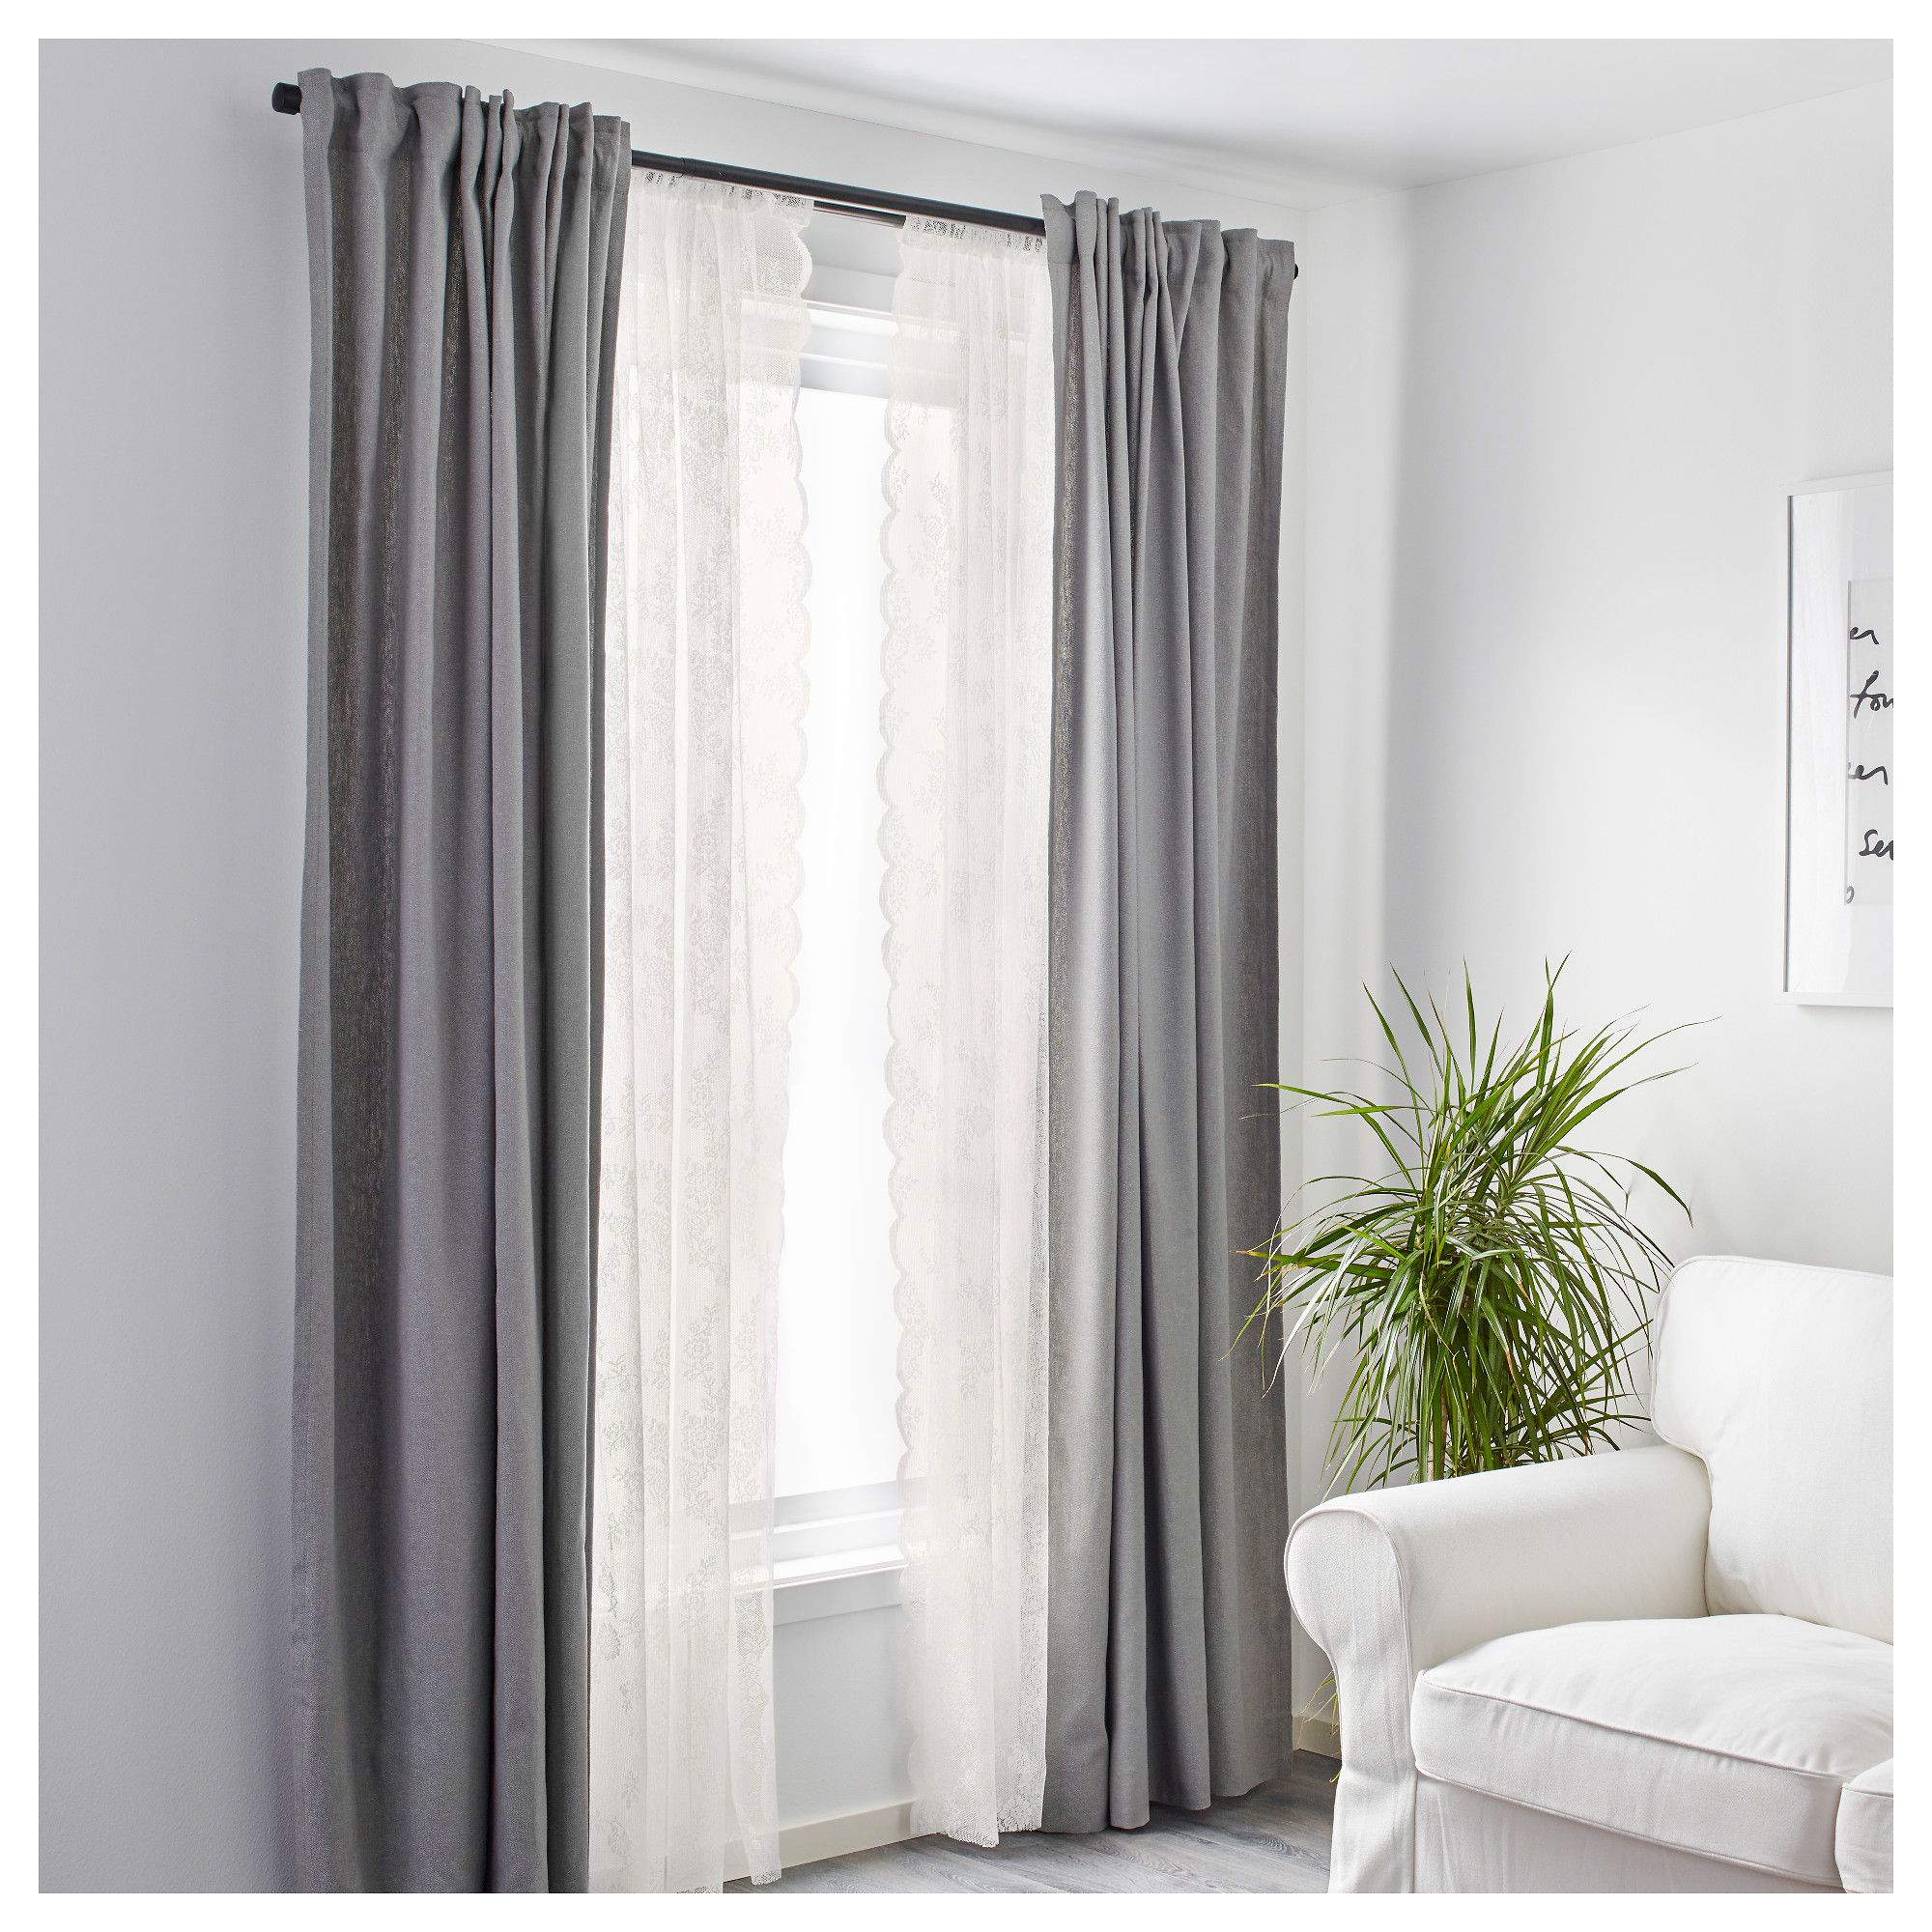 IKEA - ALVINE SPETS Lace curtains, 1 pair off-white | White cottage ... for Off White Bedroom Curtains  56mzq